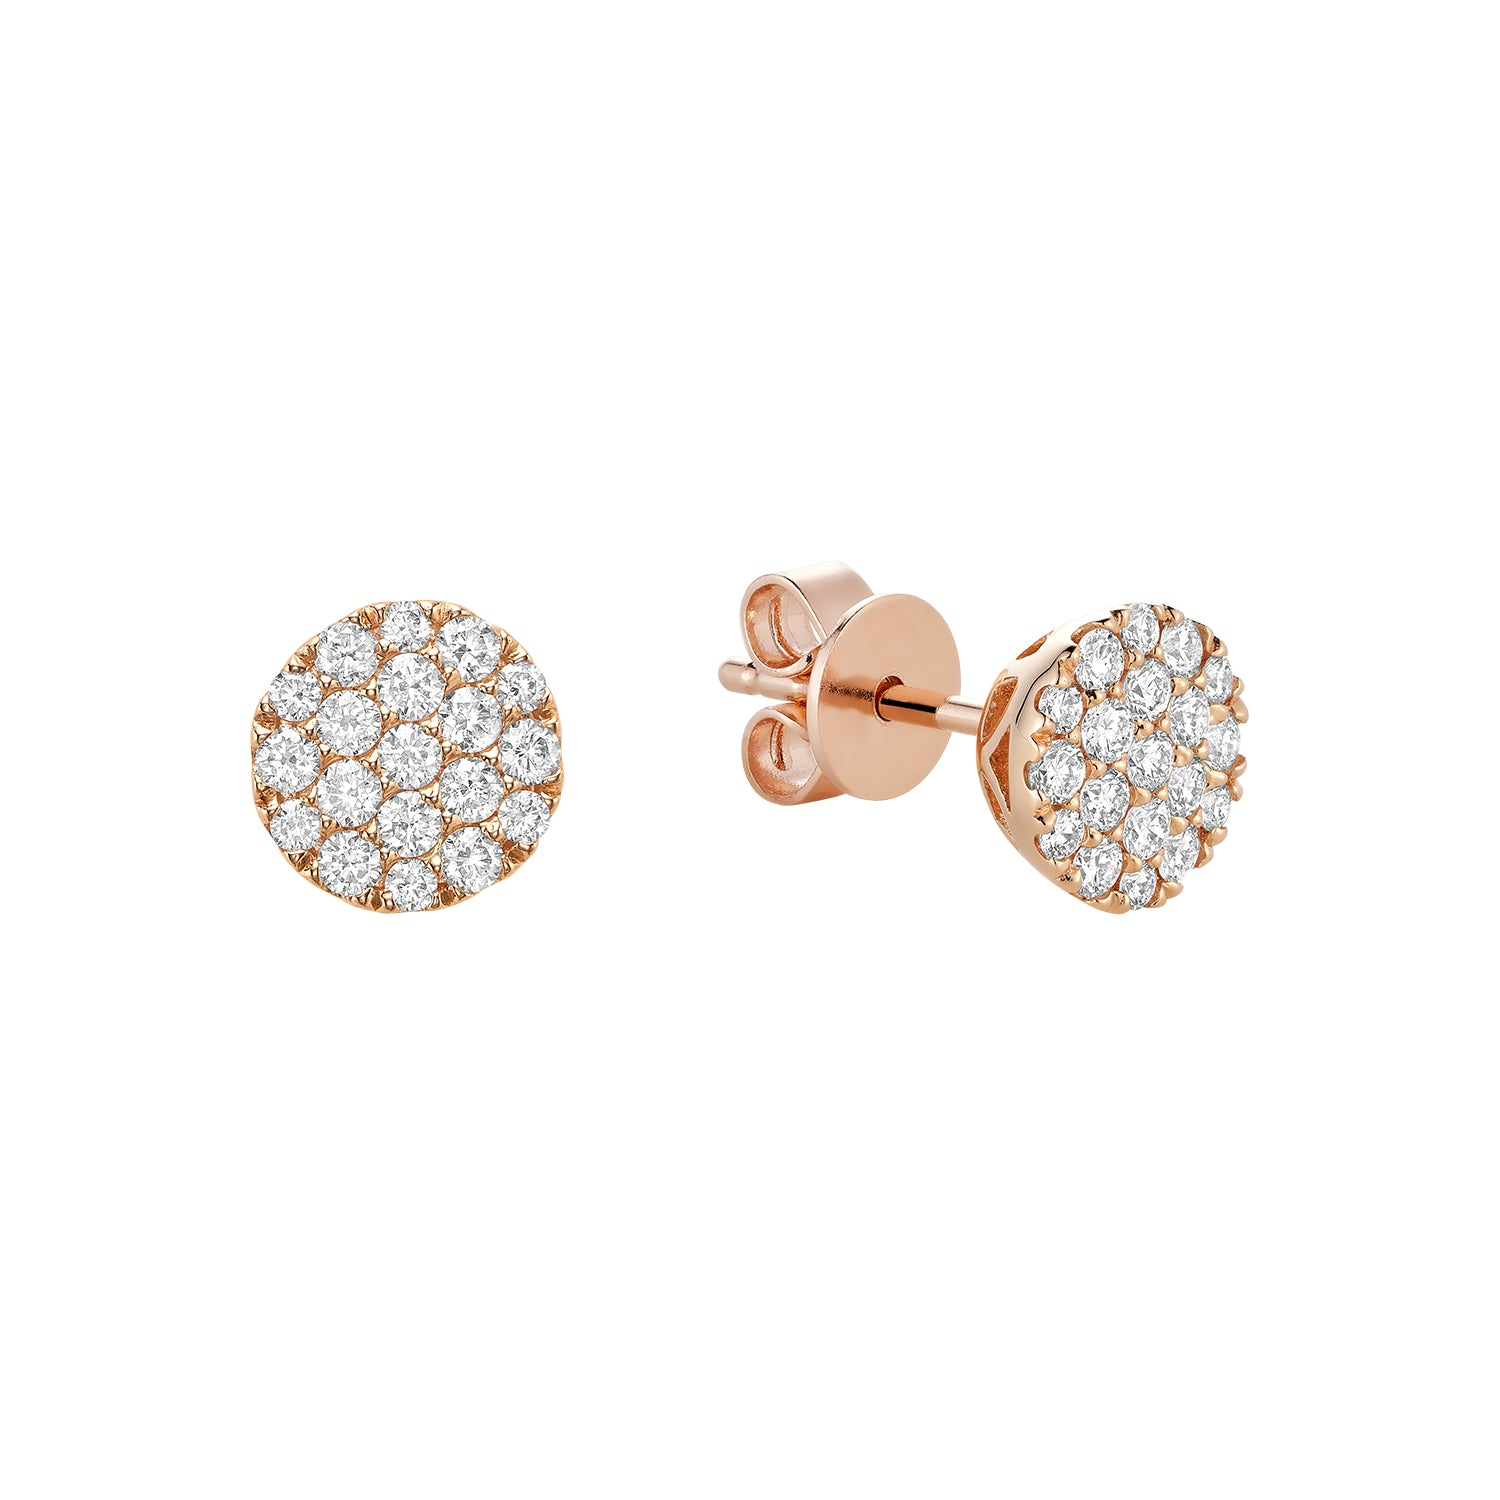 Hemsleys Collection 14K Diamond Pavé Disc Stud Earrings